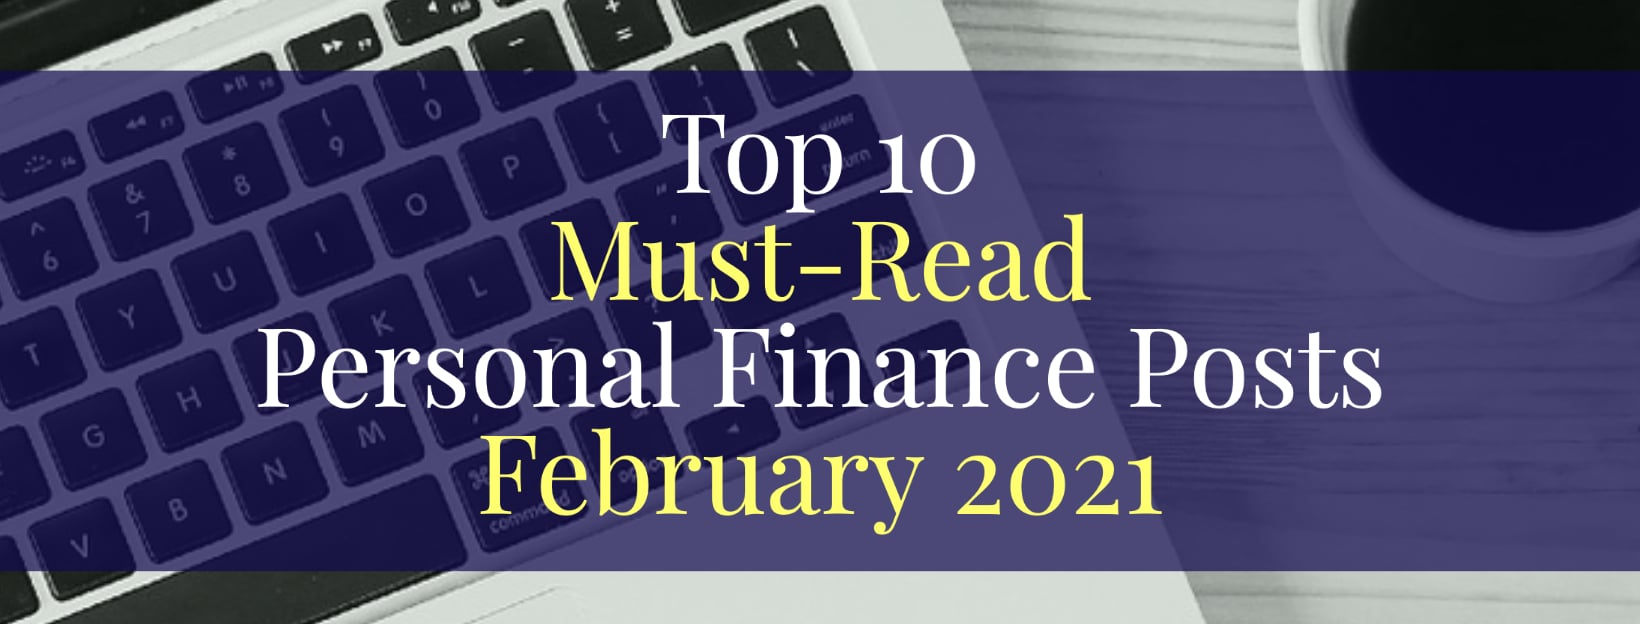 Top 10 Personal Finance Articles of the Month — February 2021